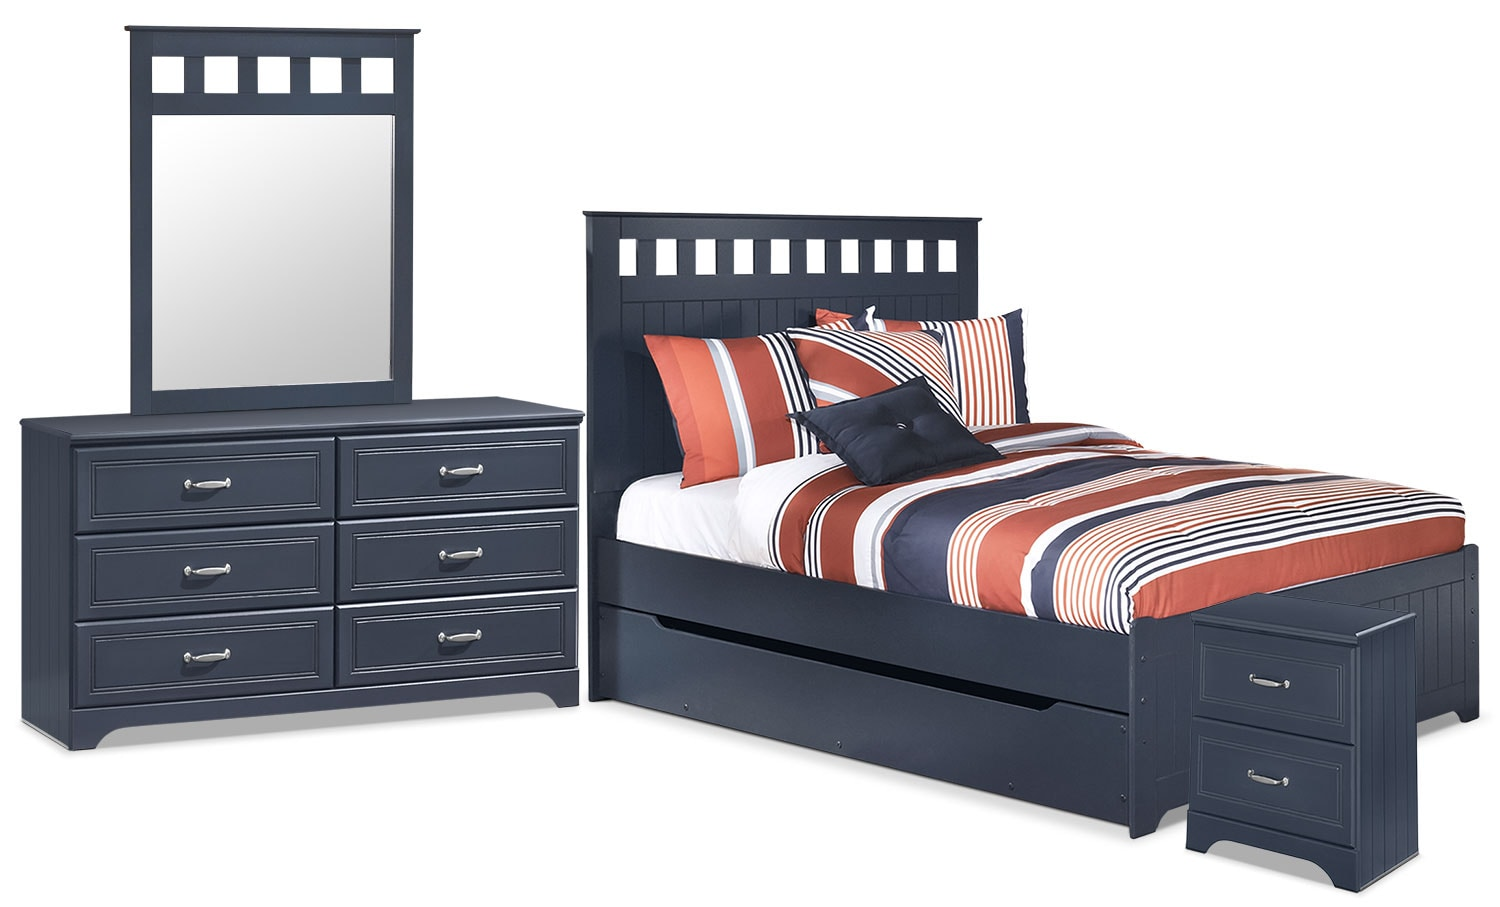 Kids Furniture - Leo 6-Piece Full Panel Bed Package with Trundle